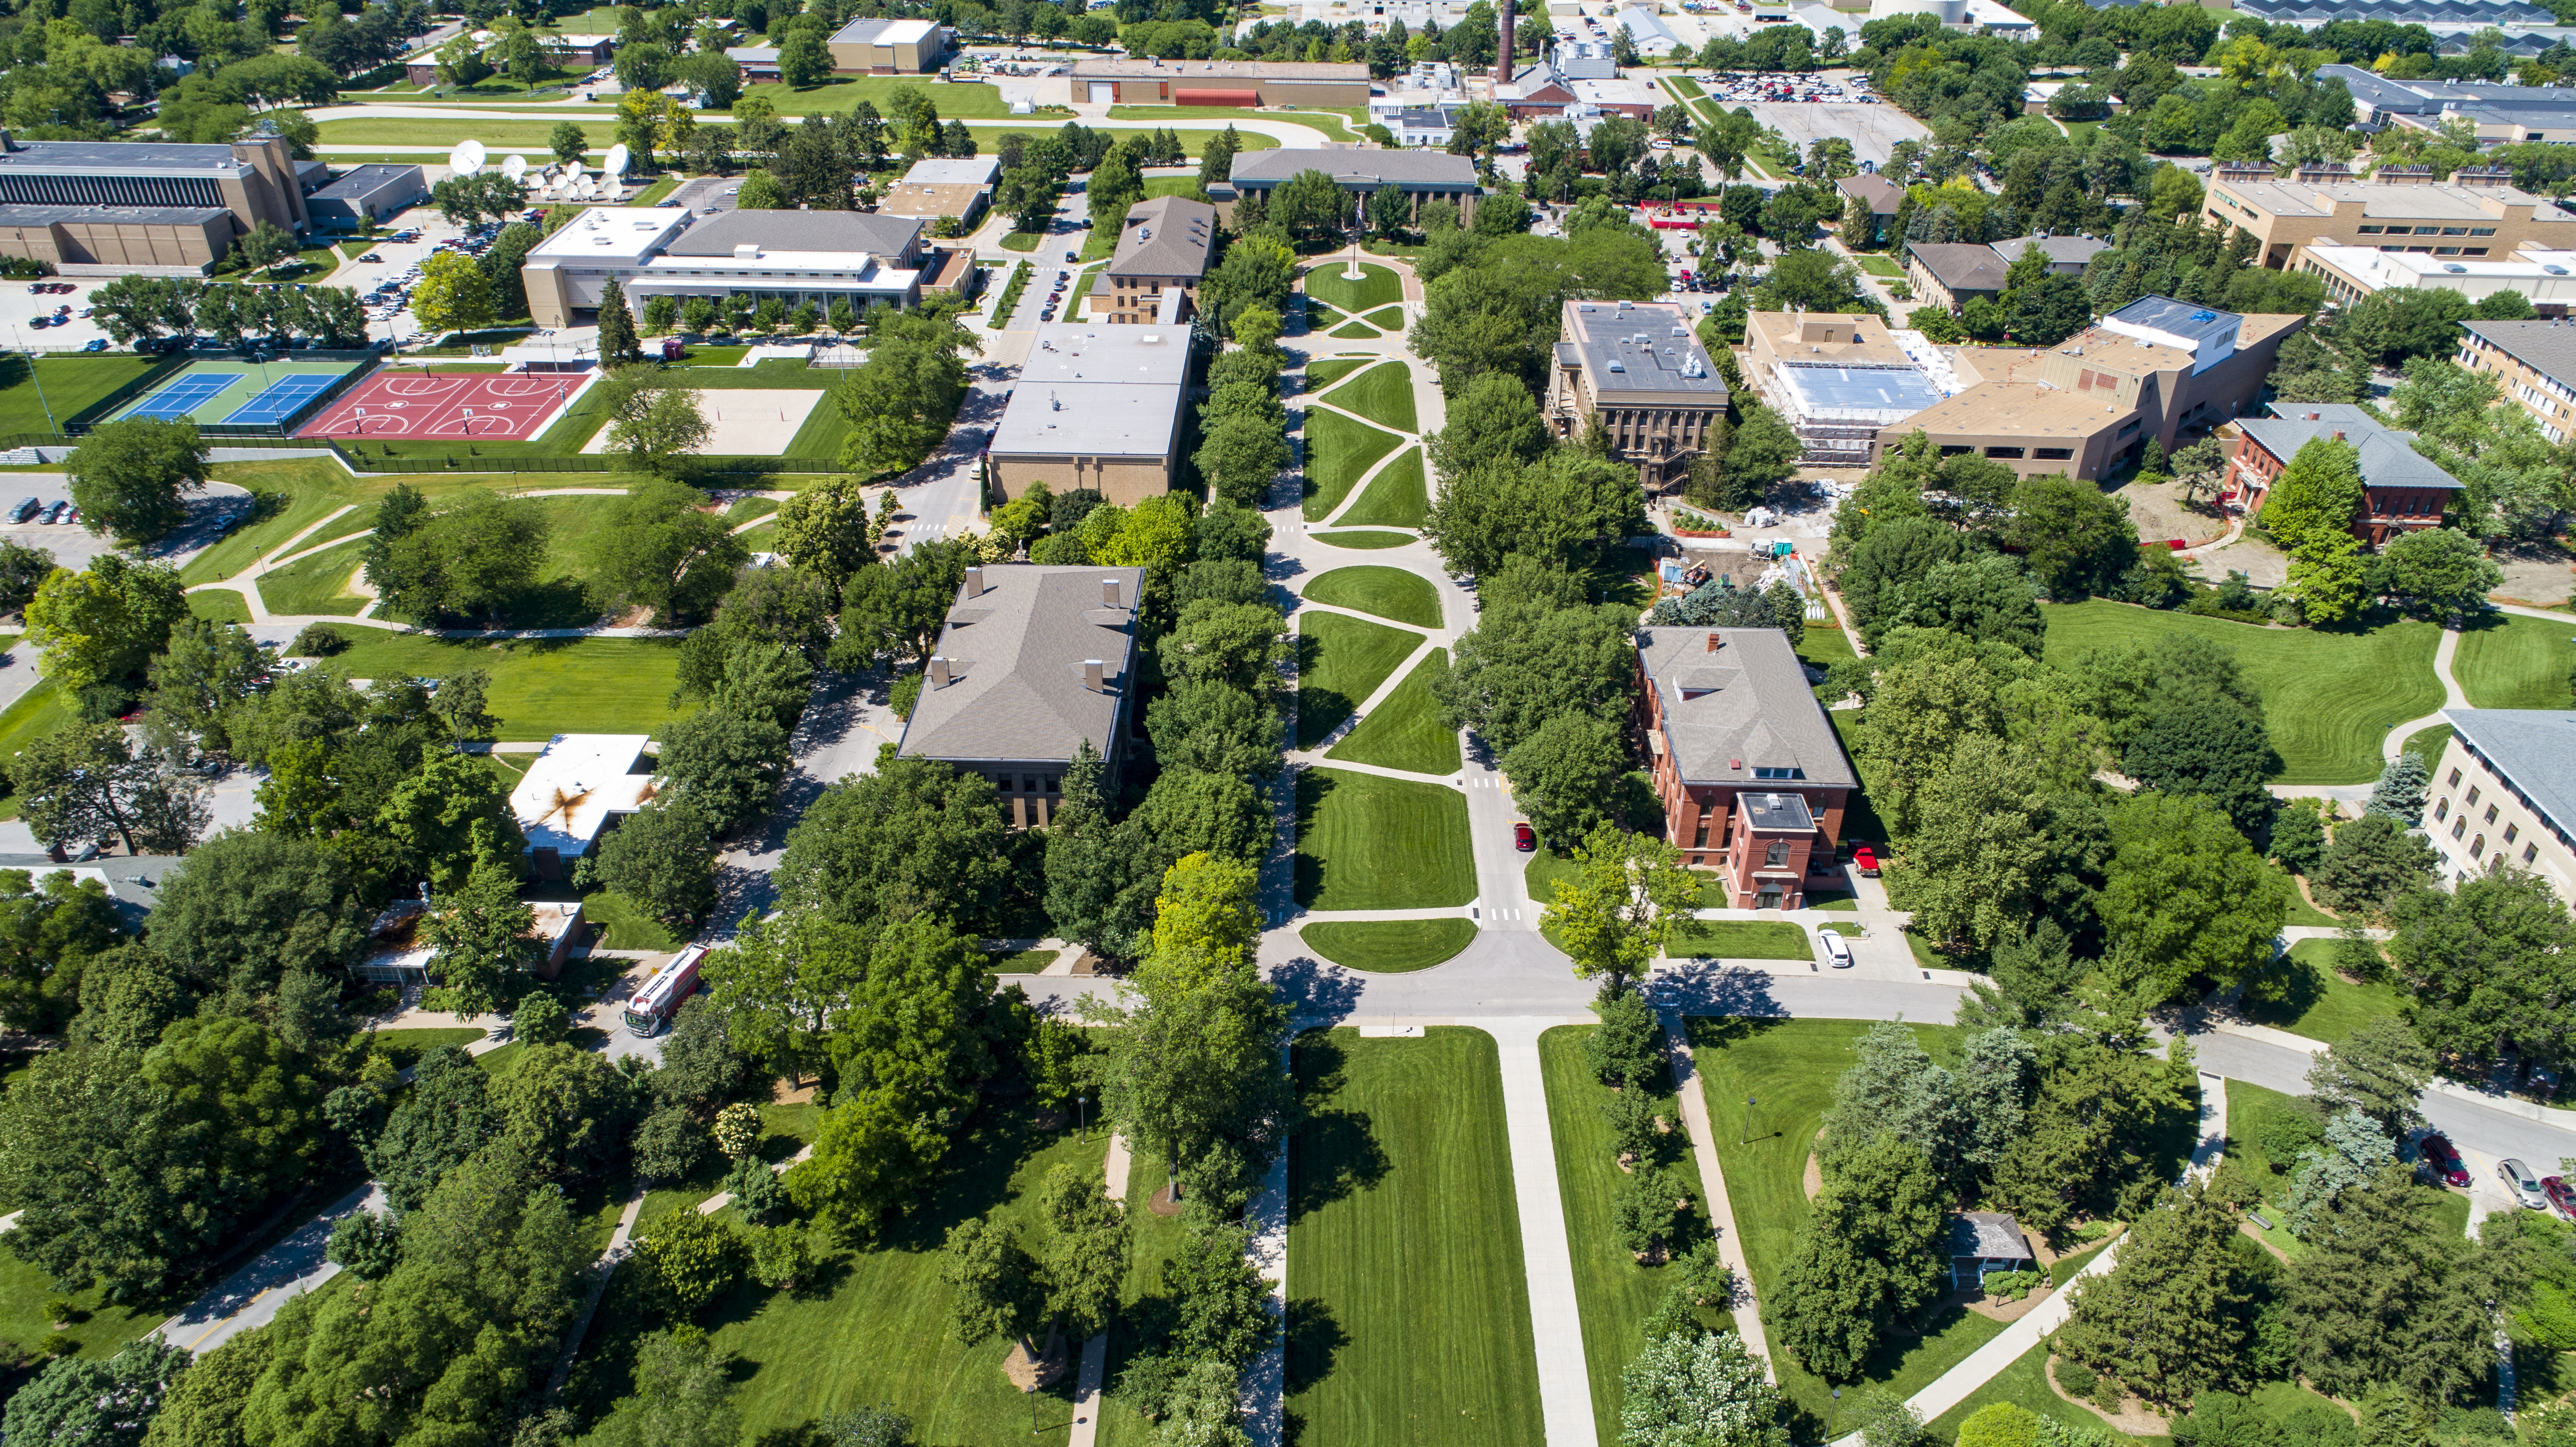 Drone footage over East Campus captures green grass and trees during the summer